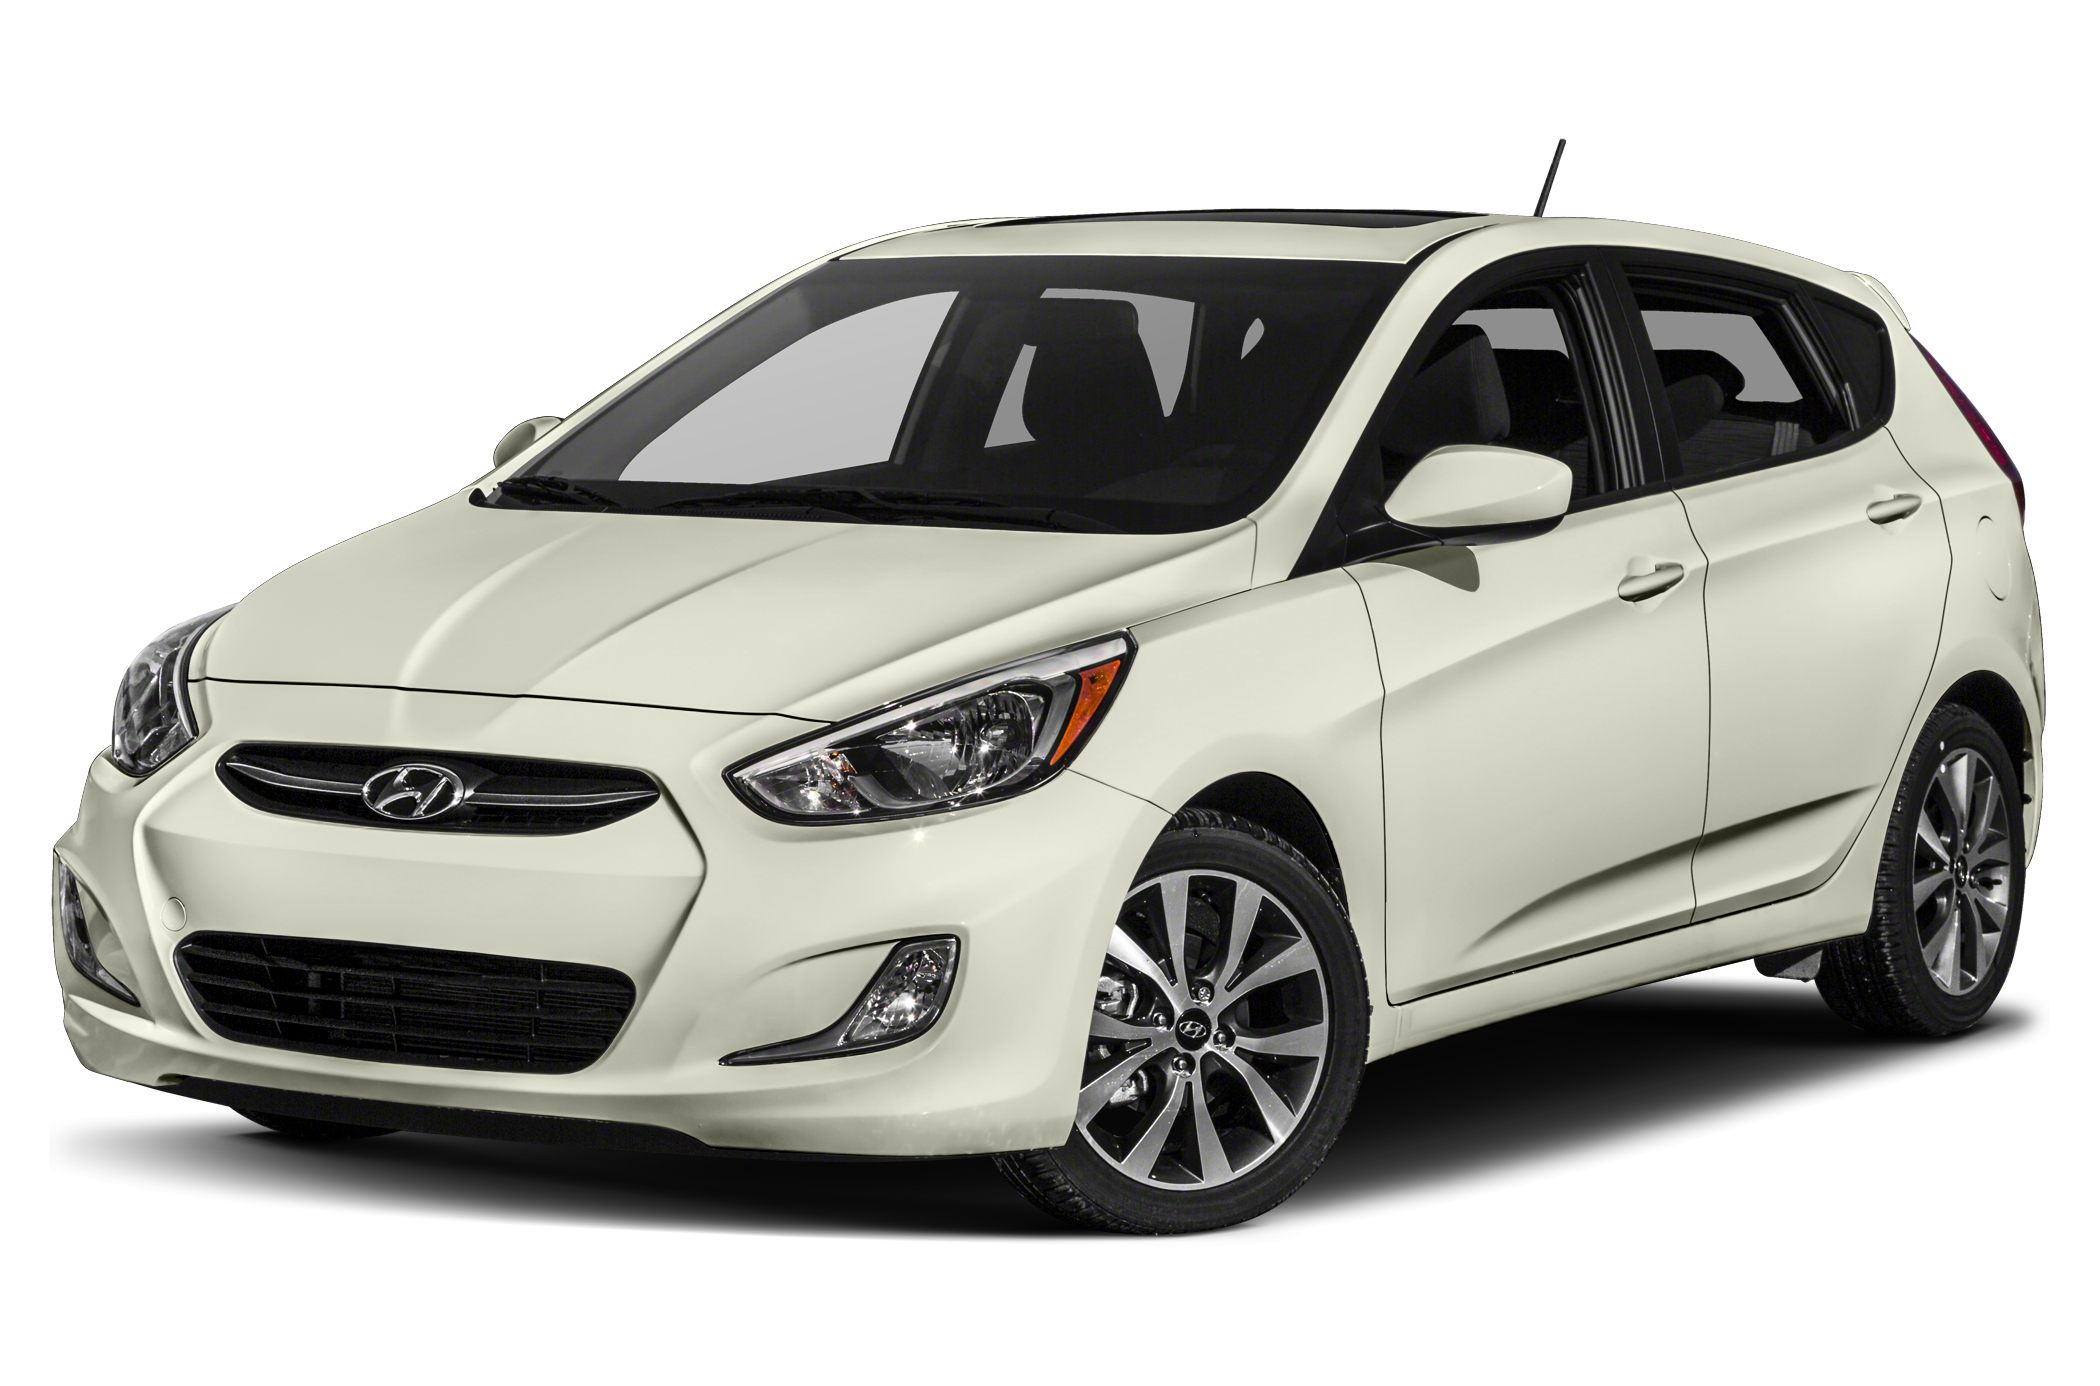 Hyundai Canada Incentives for the new 2018 Hyundai Accent Hatchback and Sedan in Milton, Toronto, and the GTA